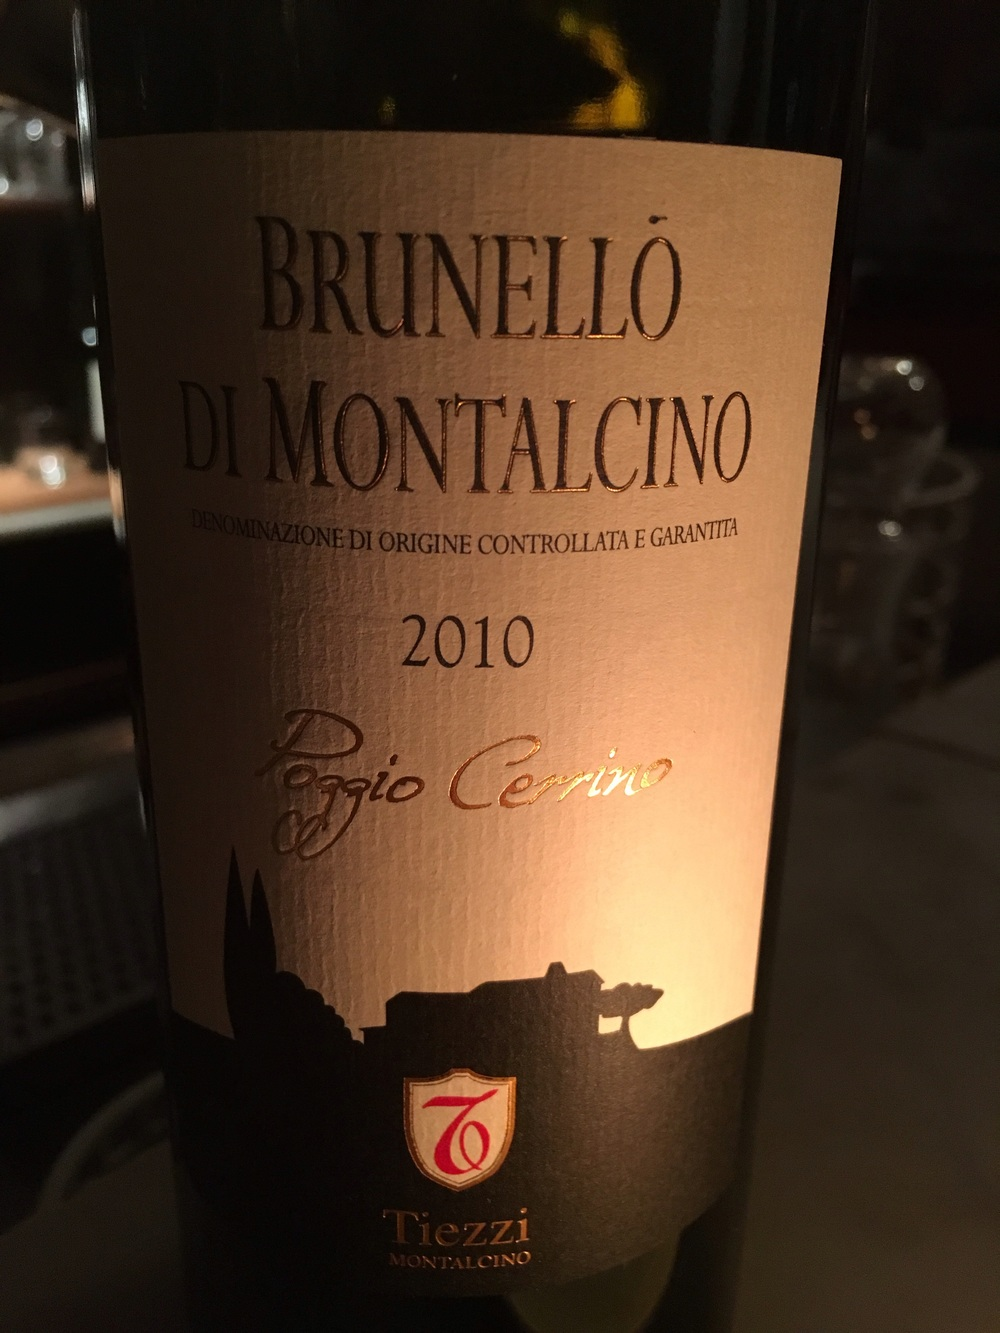 Brunello and this meal was a wonderful pairing